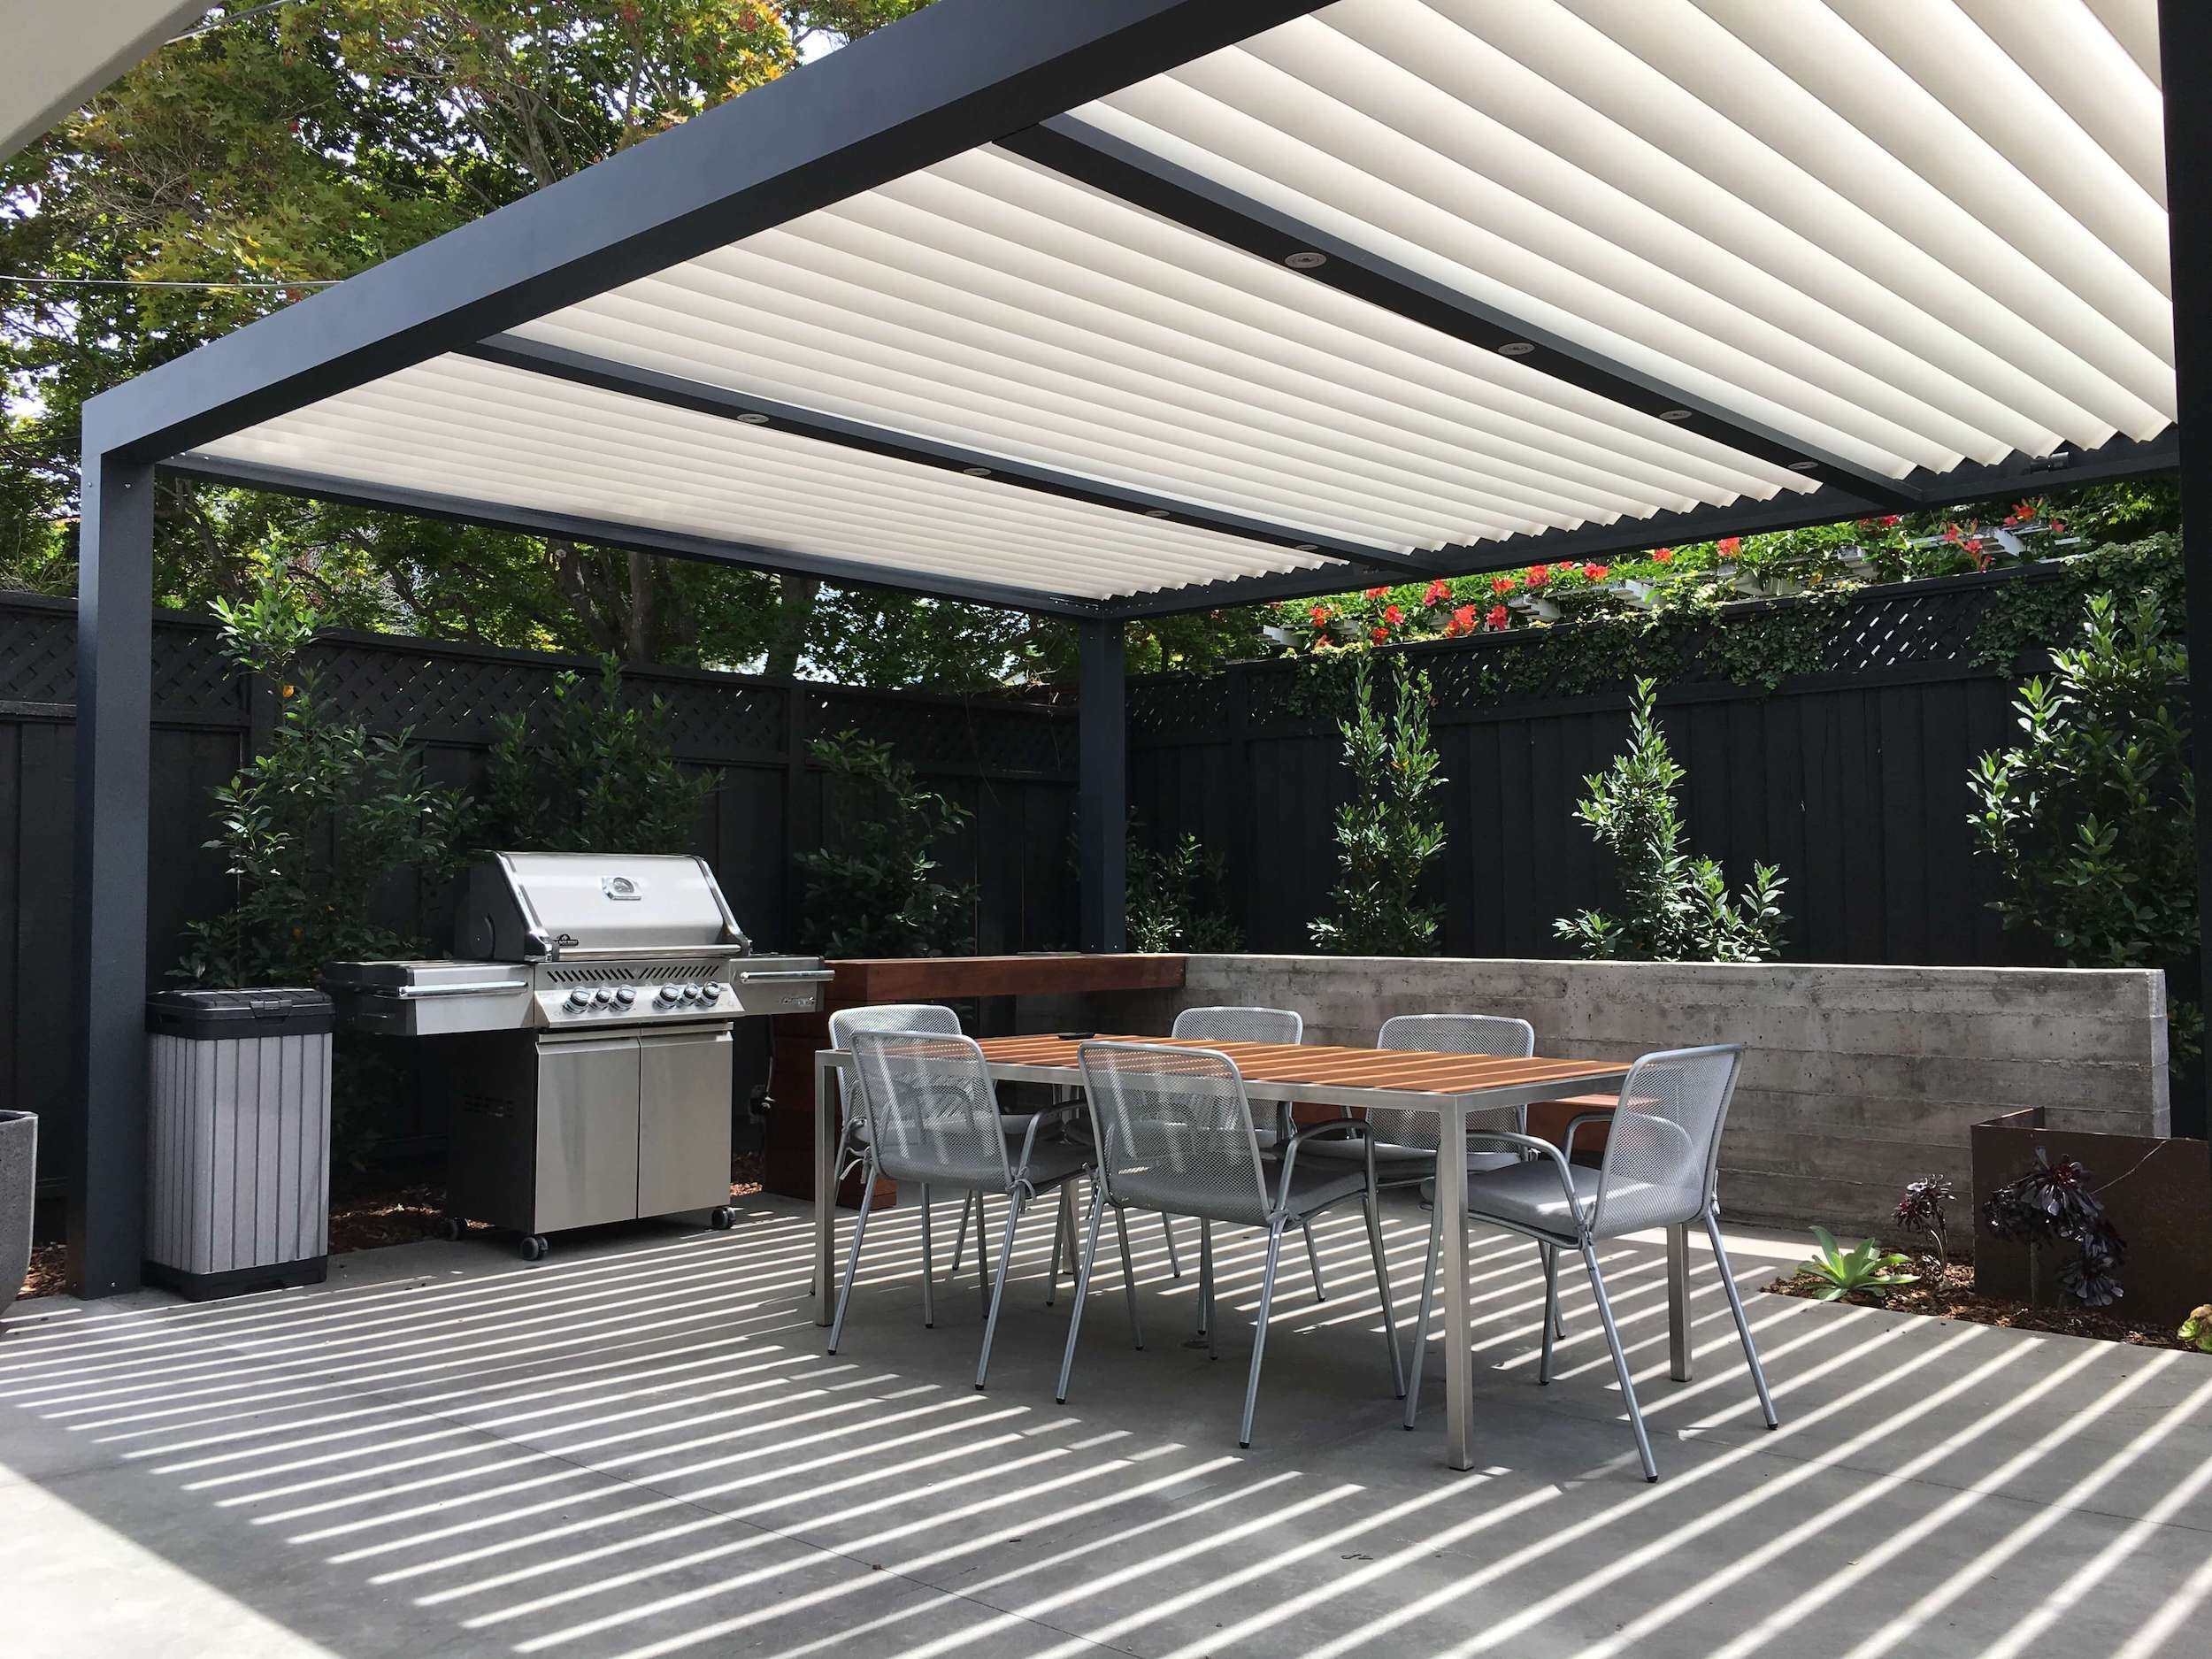 patio cover peaceful outdoor dining